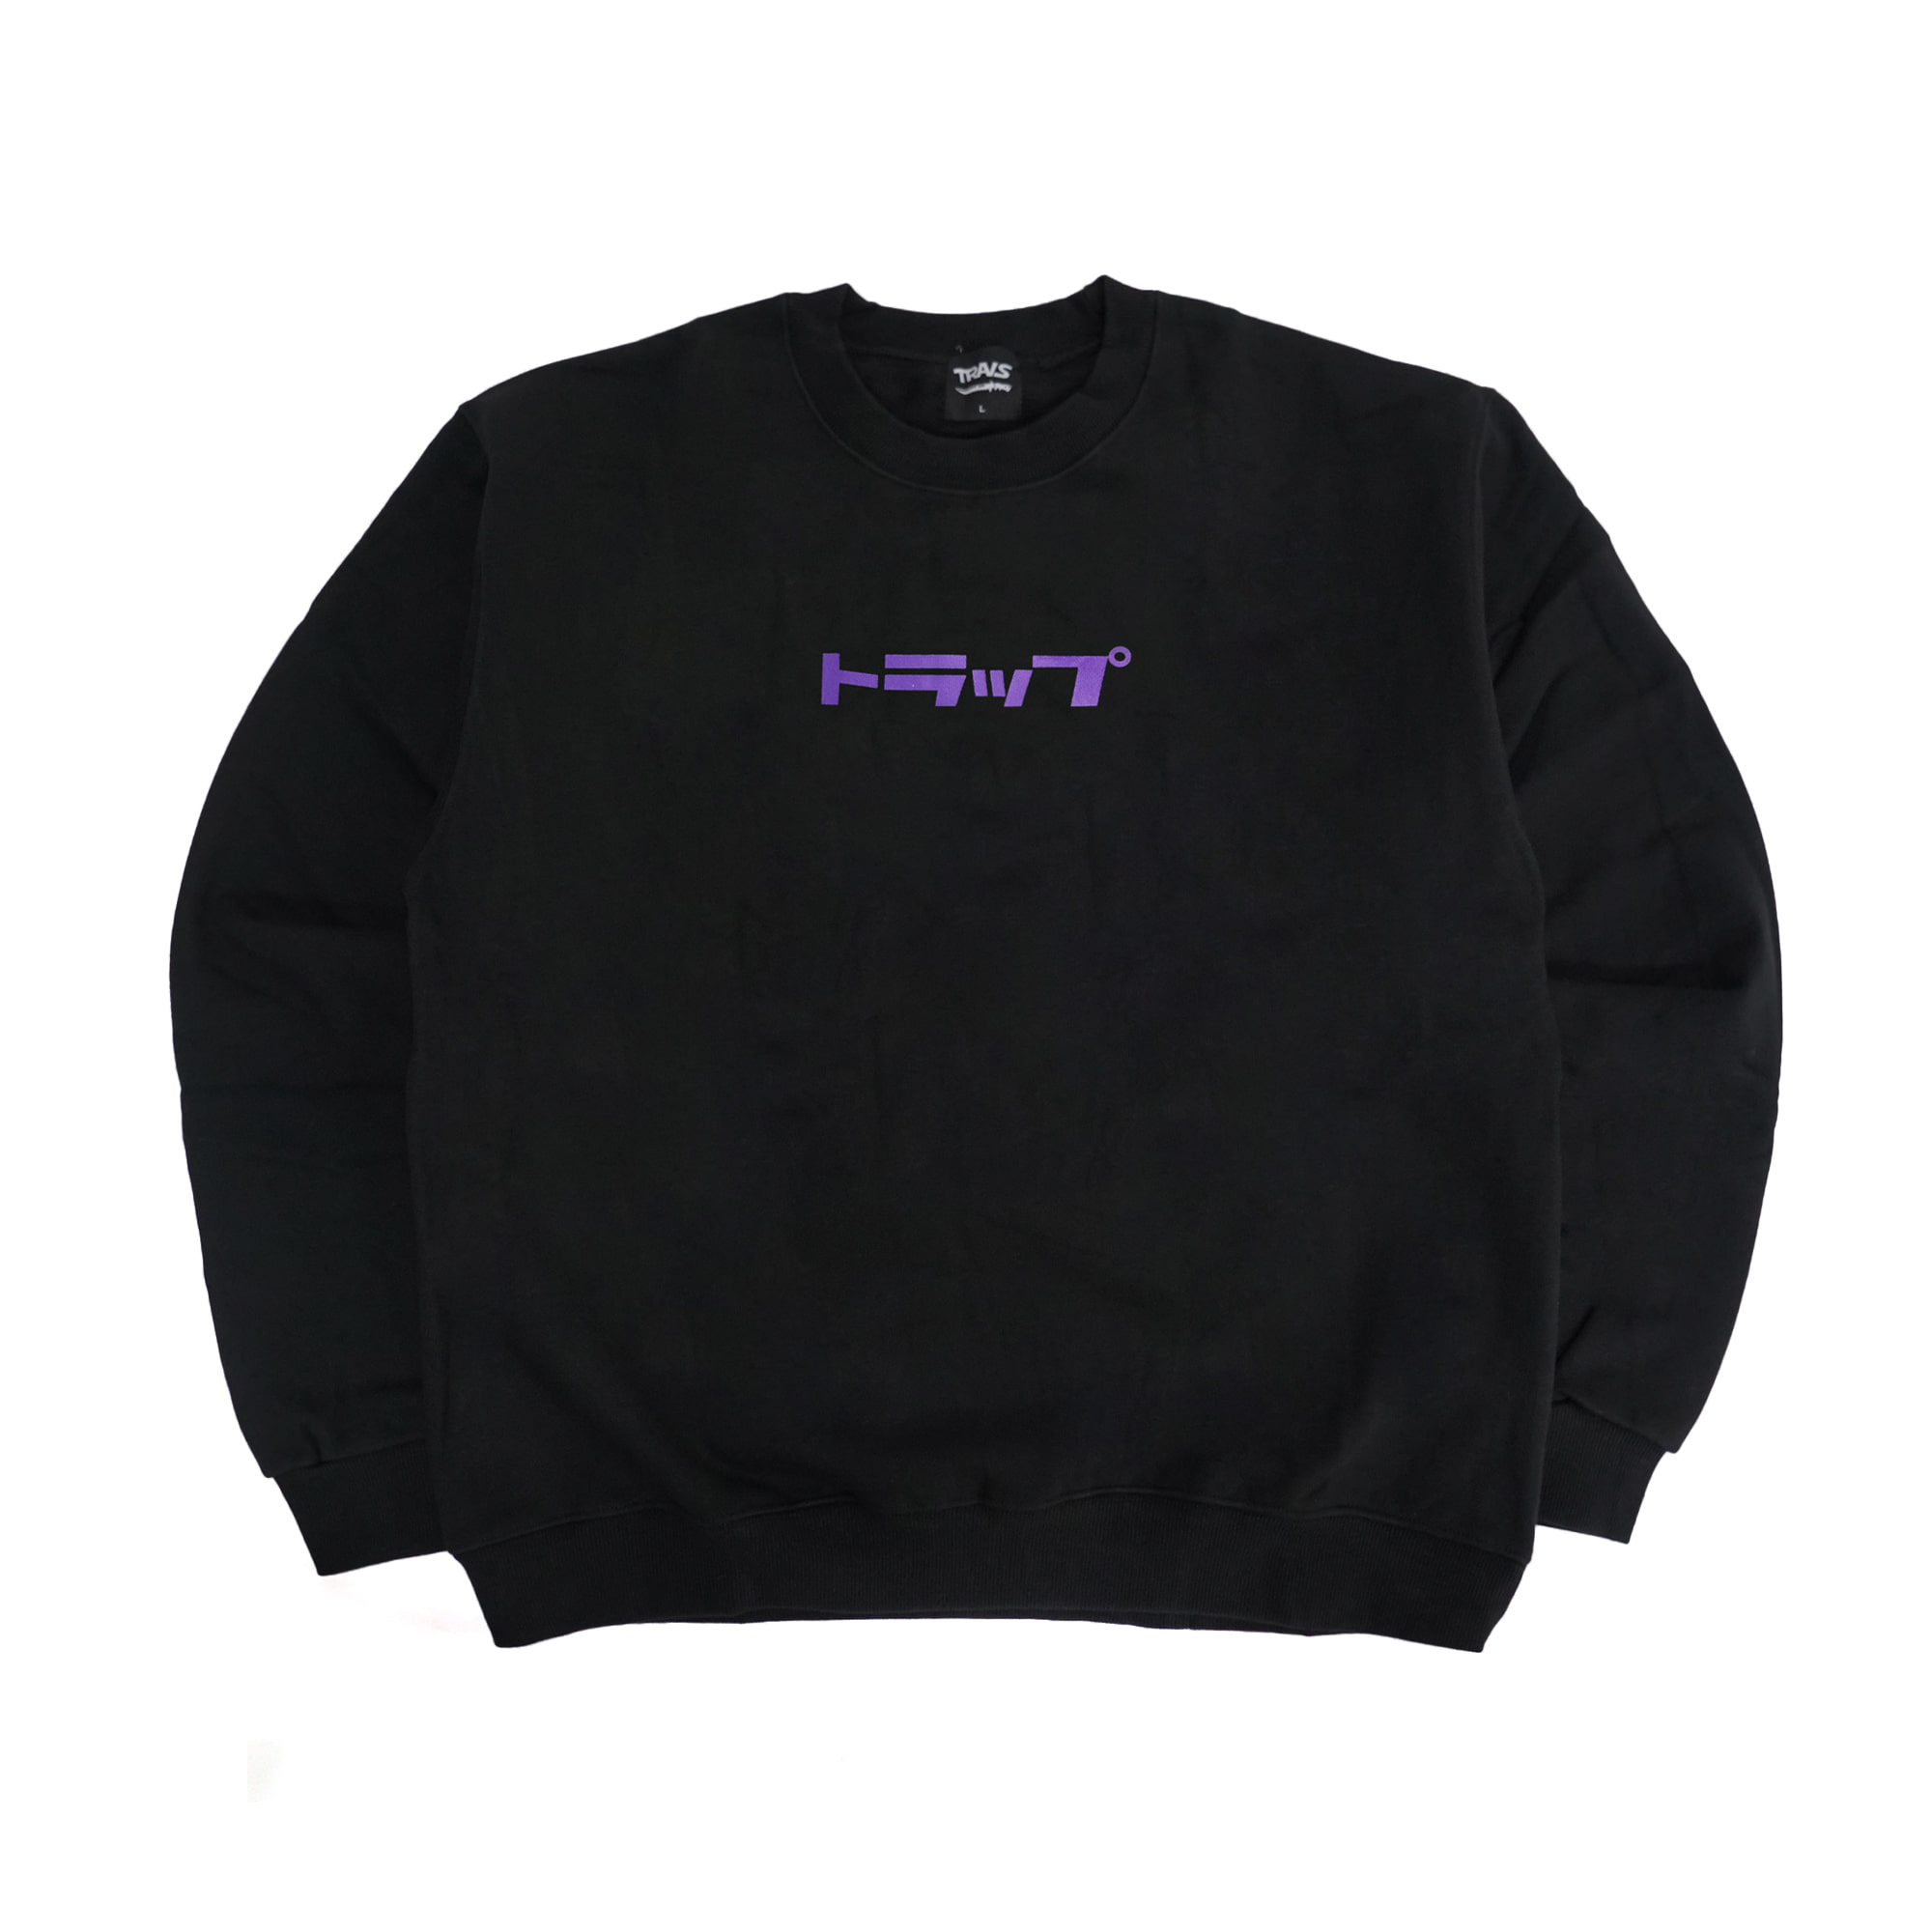 [TRAVS] トラップ TRAP CREWNECK SWEATSHIRTS - BLACK / PURPLE